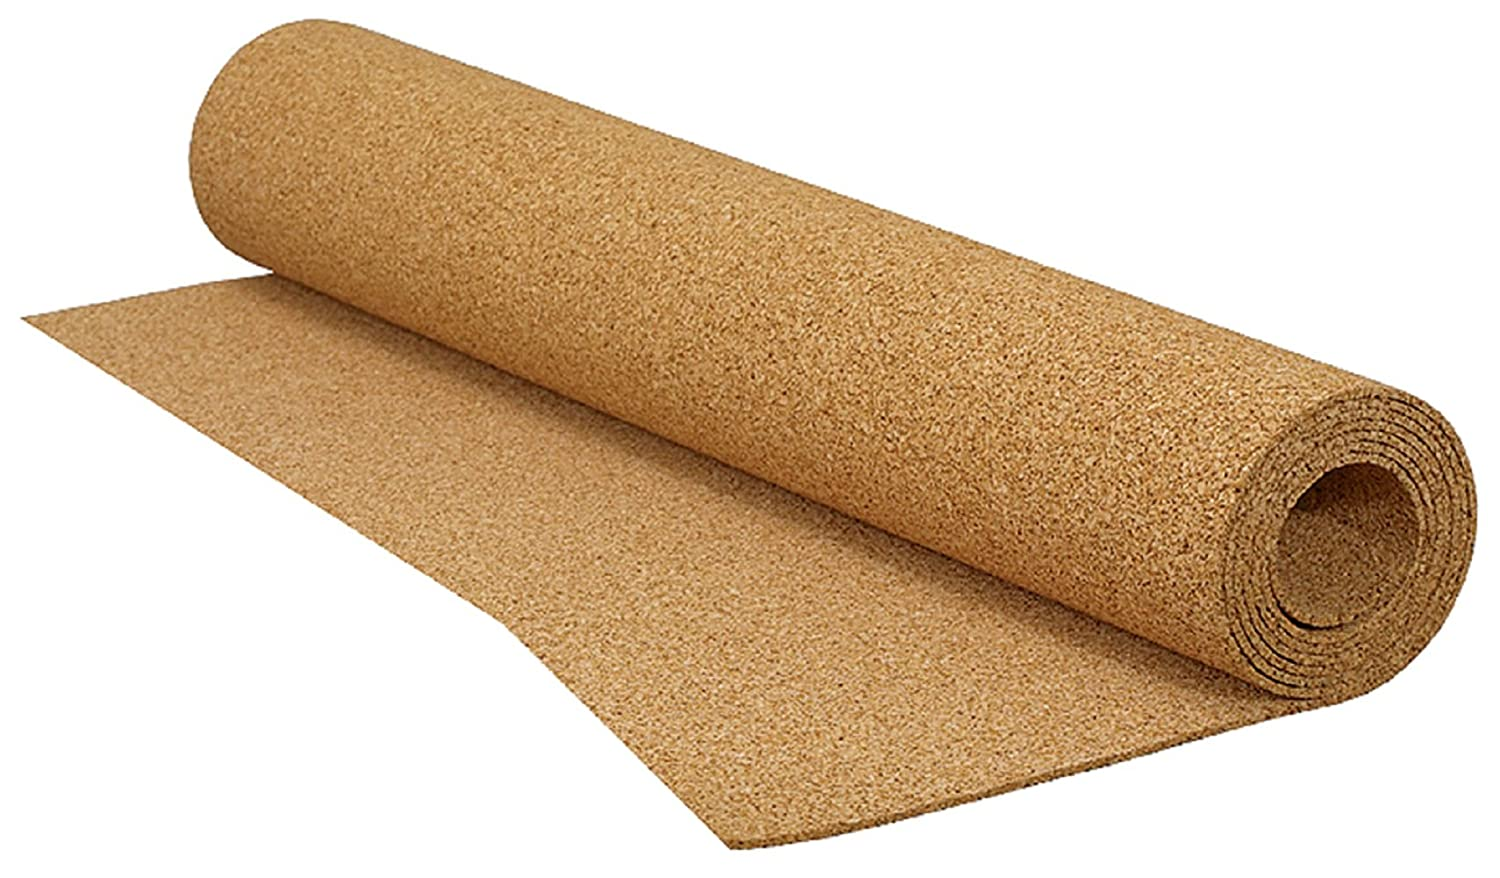 QEP 200 sq. ft. 48 in. x 50 ft. x 1/8 in. Cork Underlayment Roll 72008Q